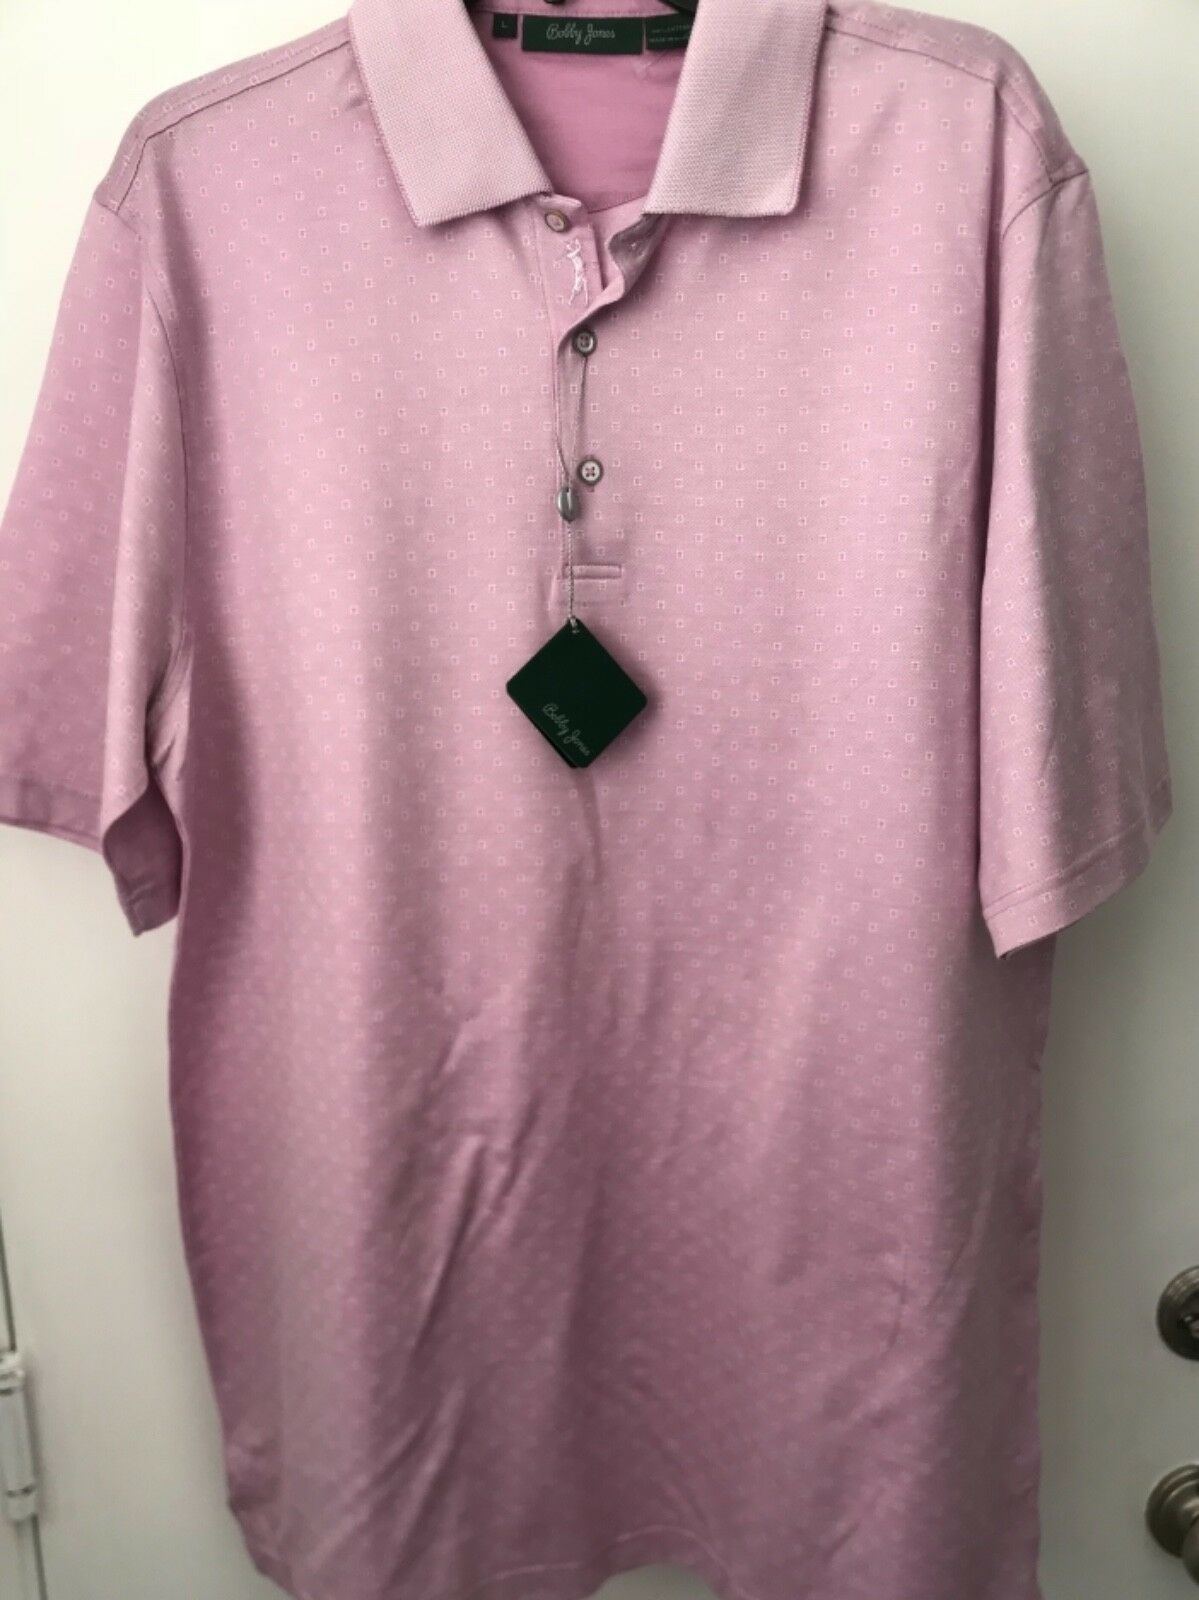 Primary image for Bobby Jones Mens L Lilac Cotton Golf Polo Shirt NWT